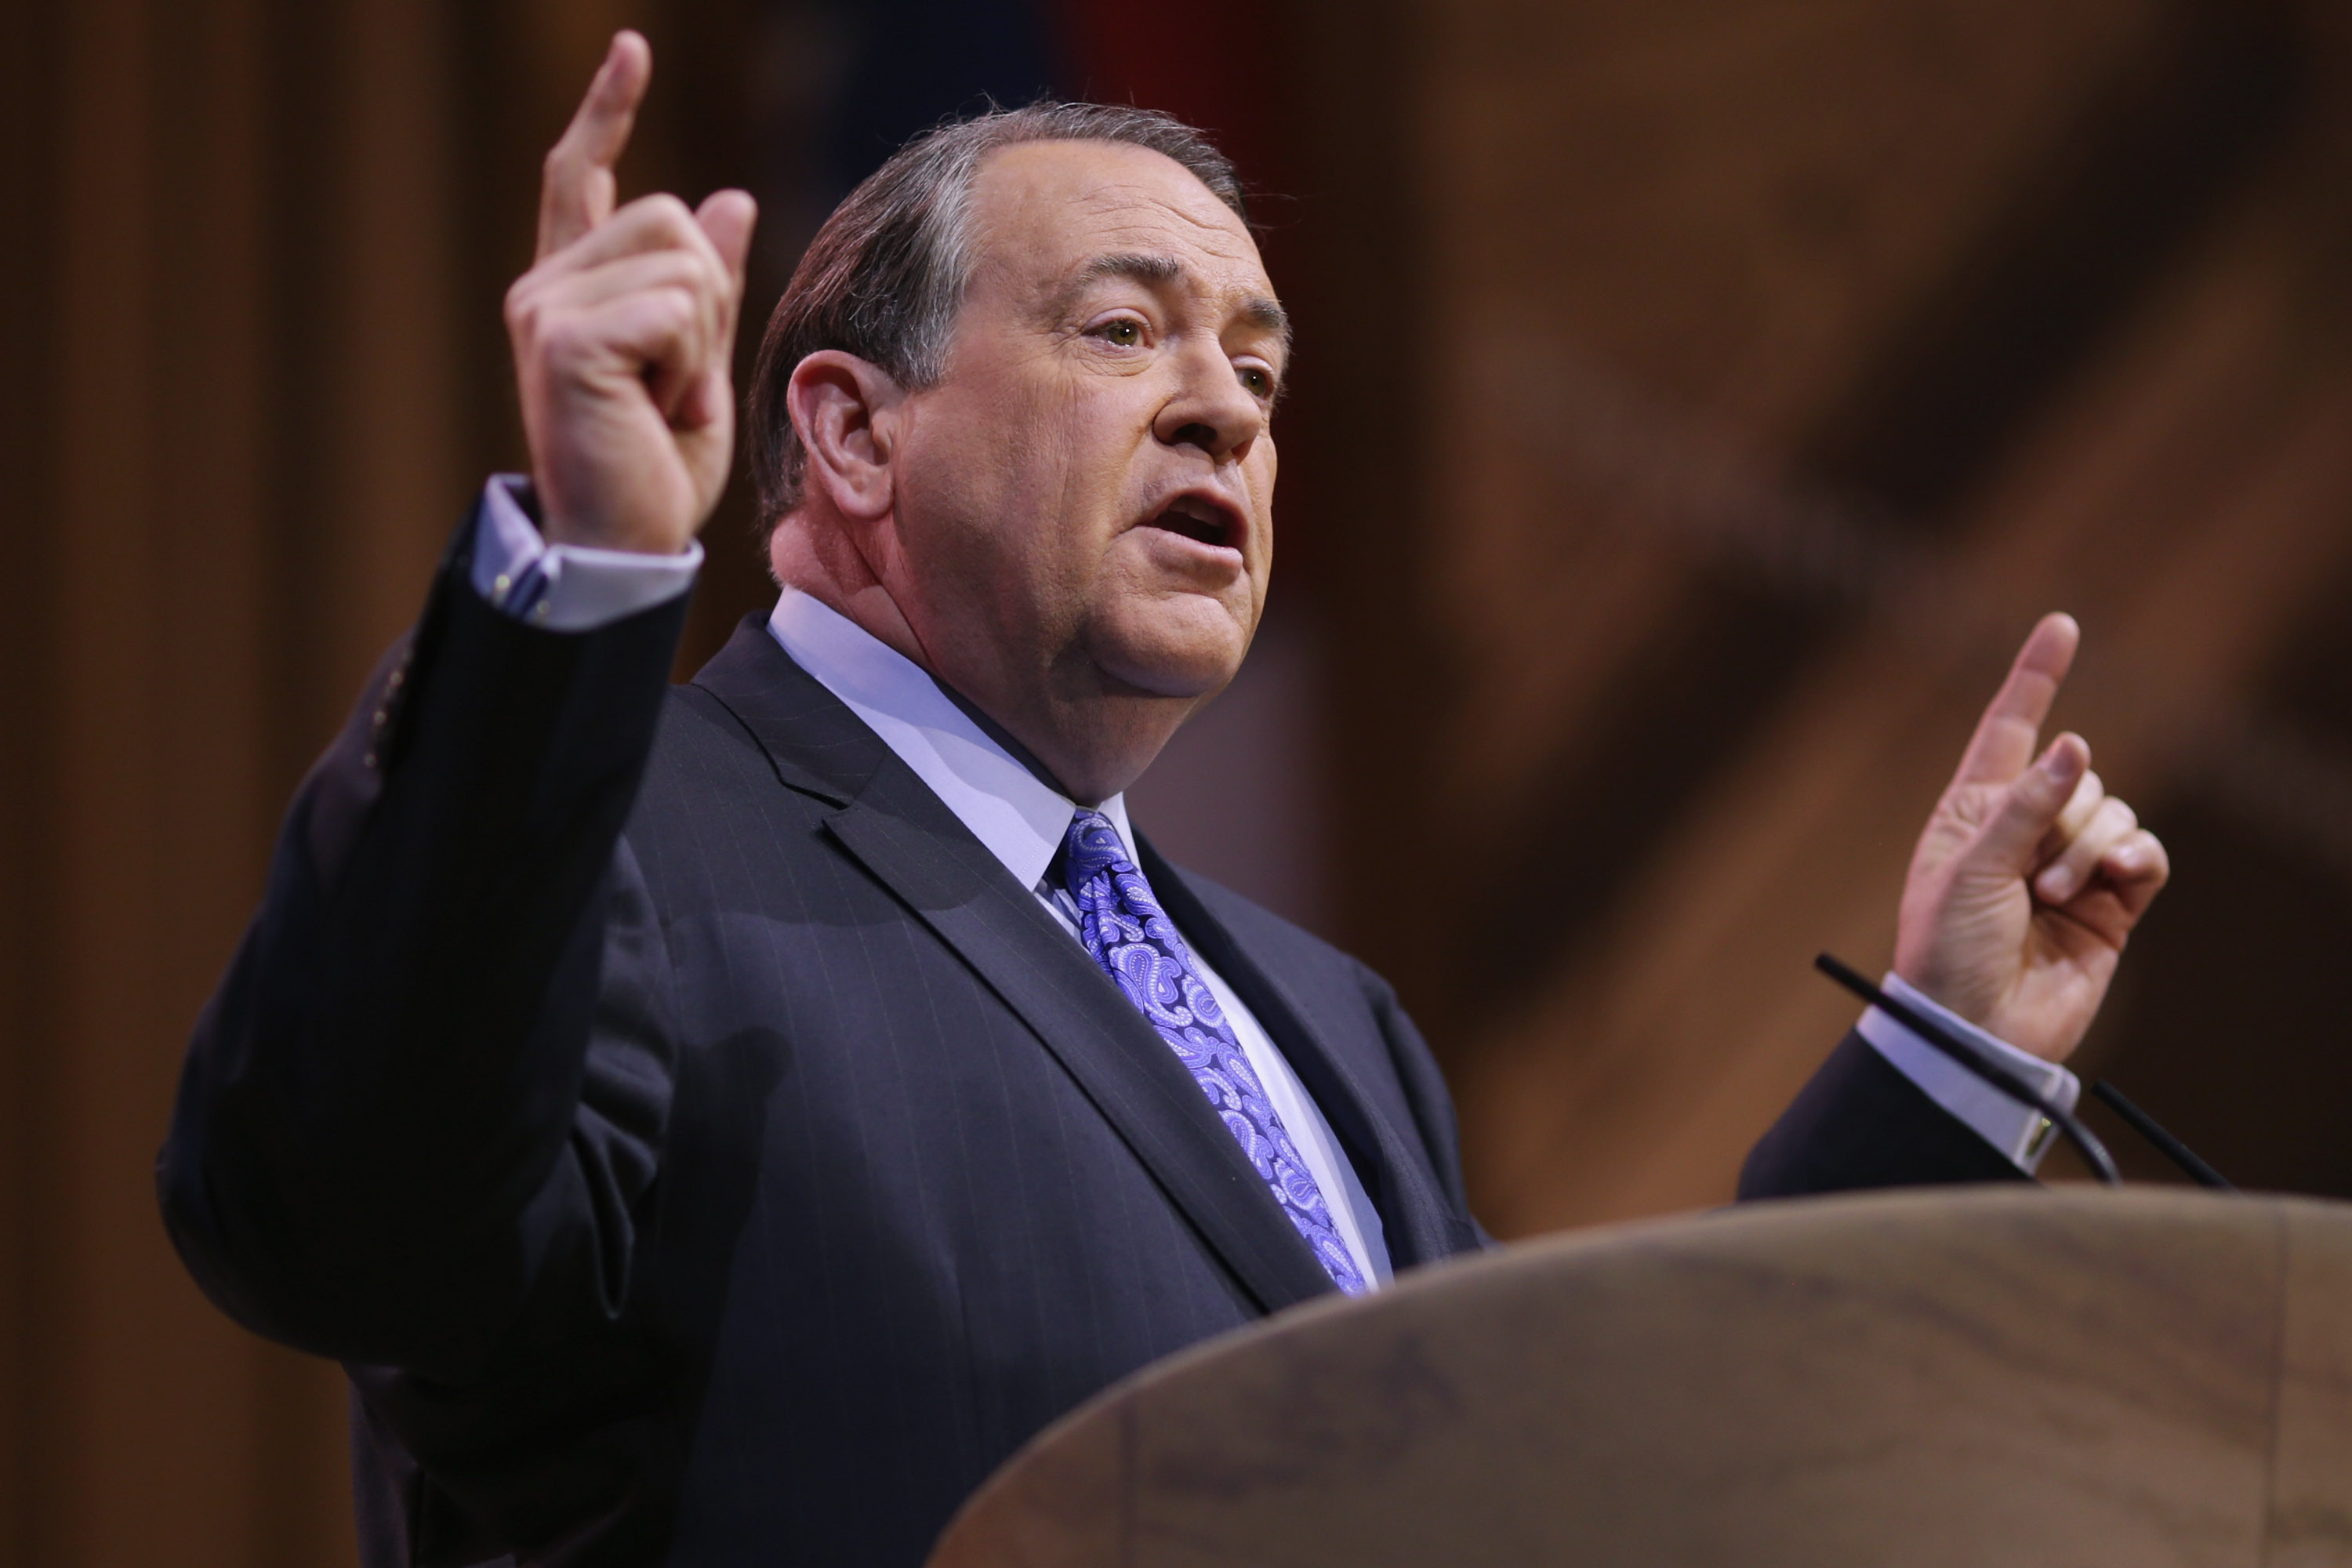 Former Arkansas Governor Mike Huckabee speaks during the second day of the Conservative Political Action Conference at the Gaylord International Hotel and Conference Center on March 7, 2014 in National Harbor, Md.